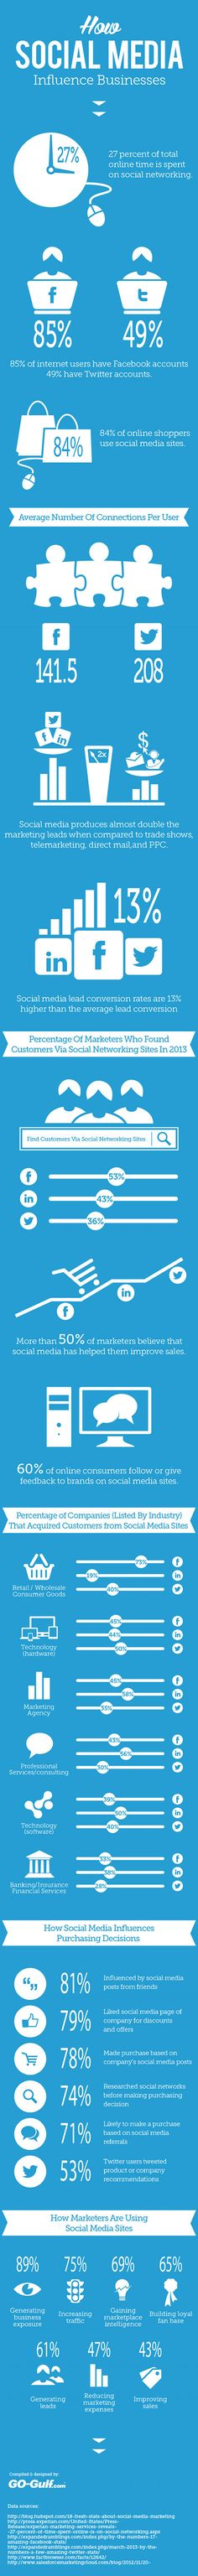 how-social-media-influence-businesses-infographic